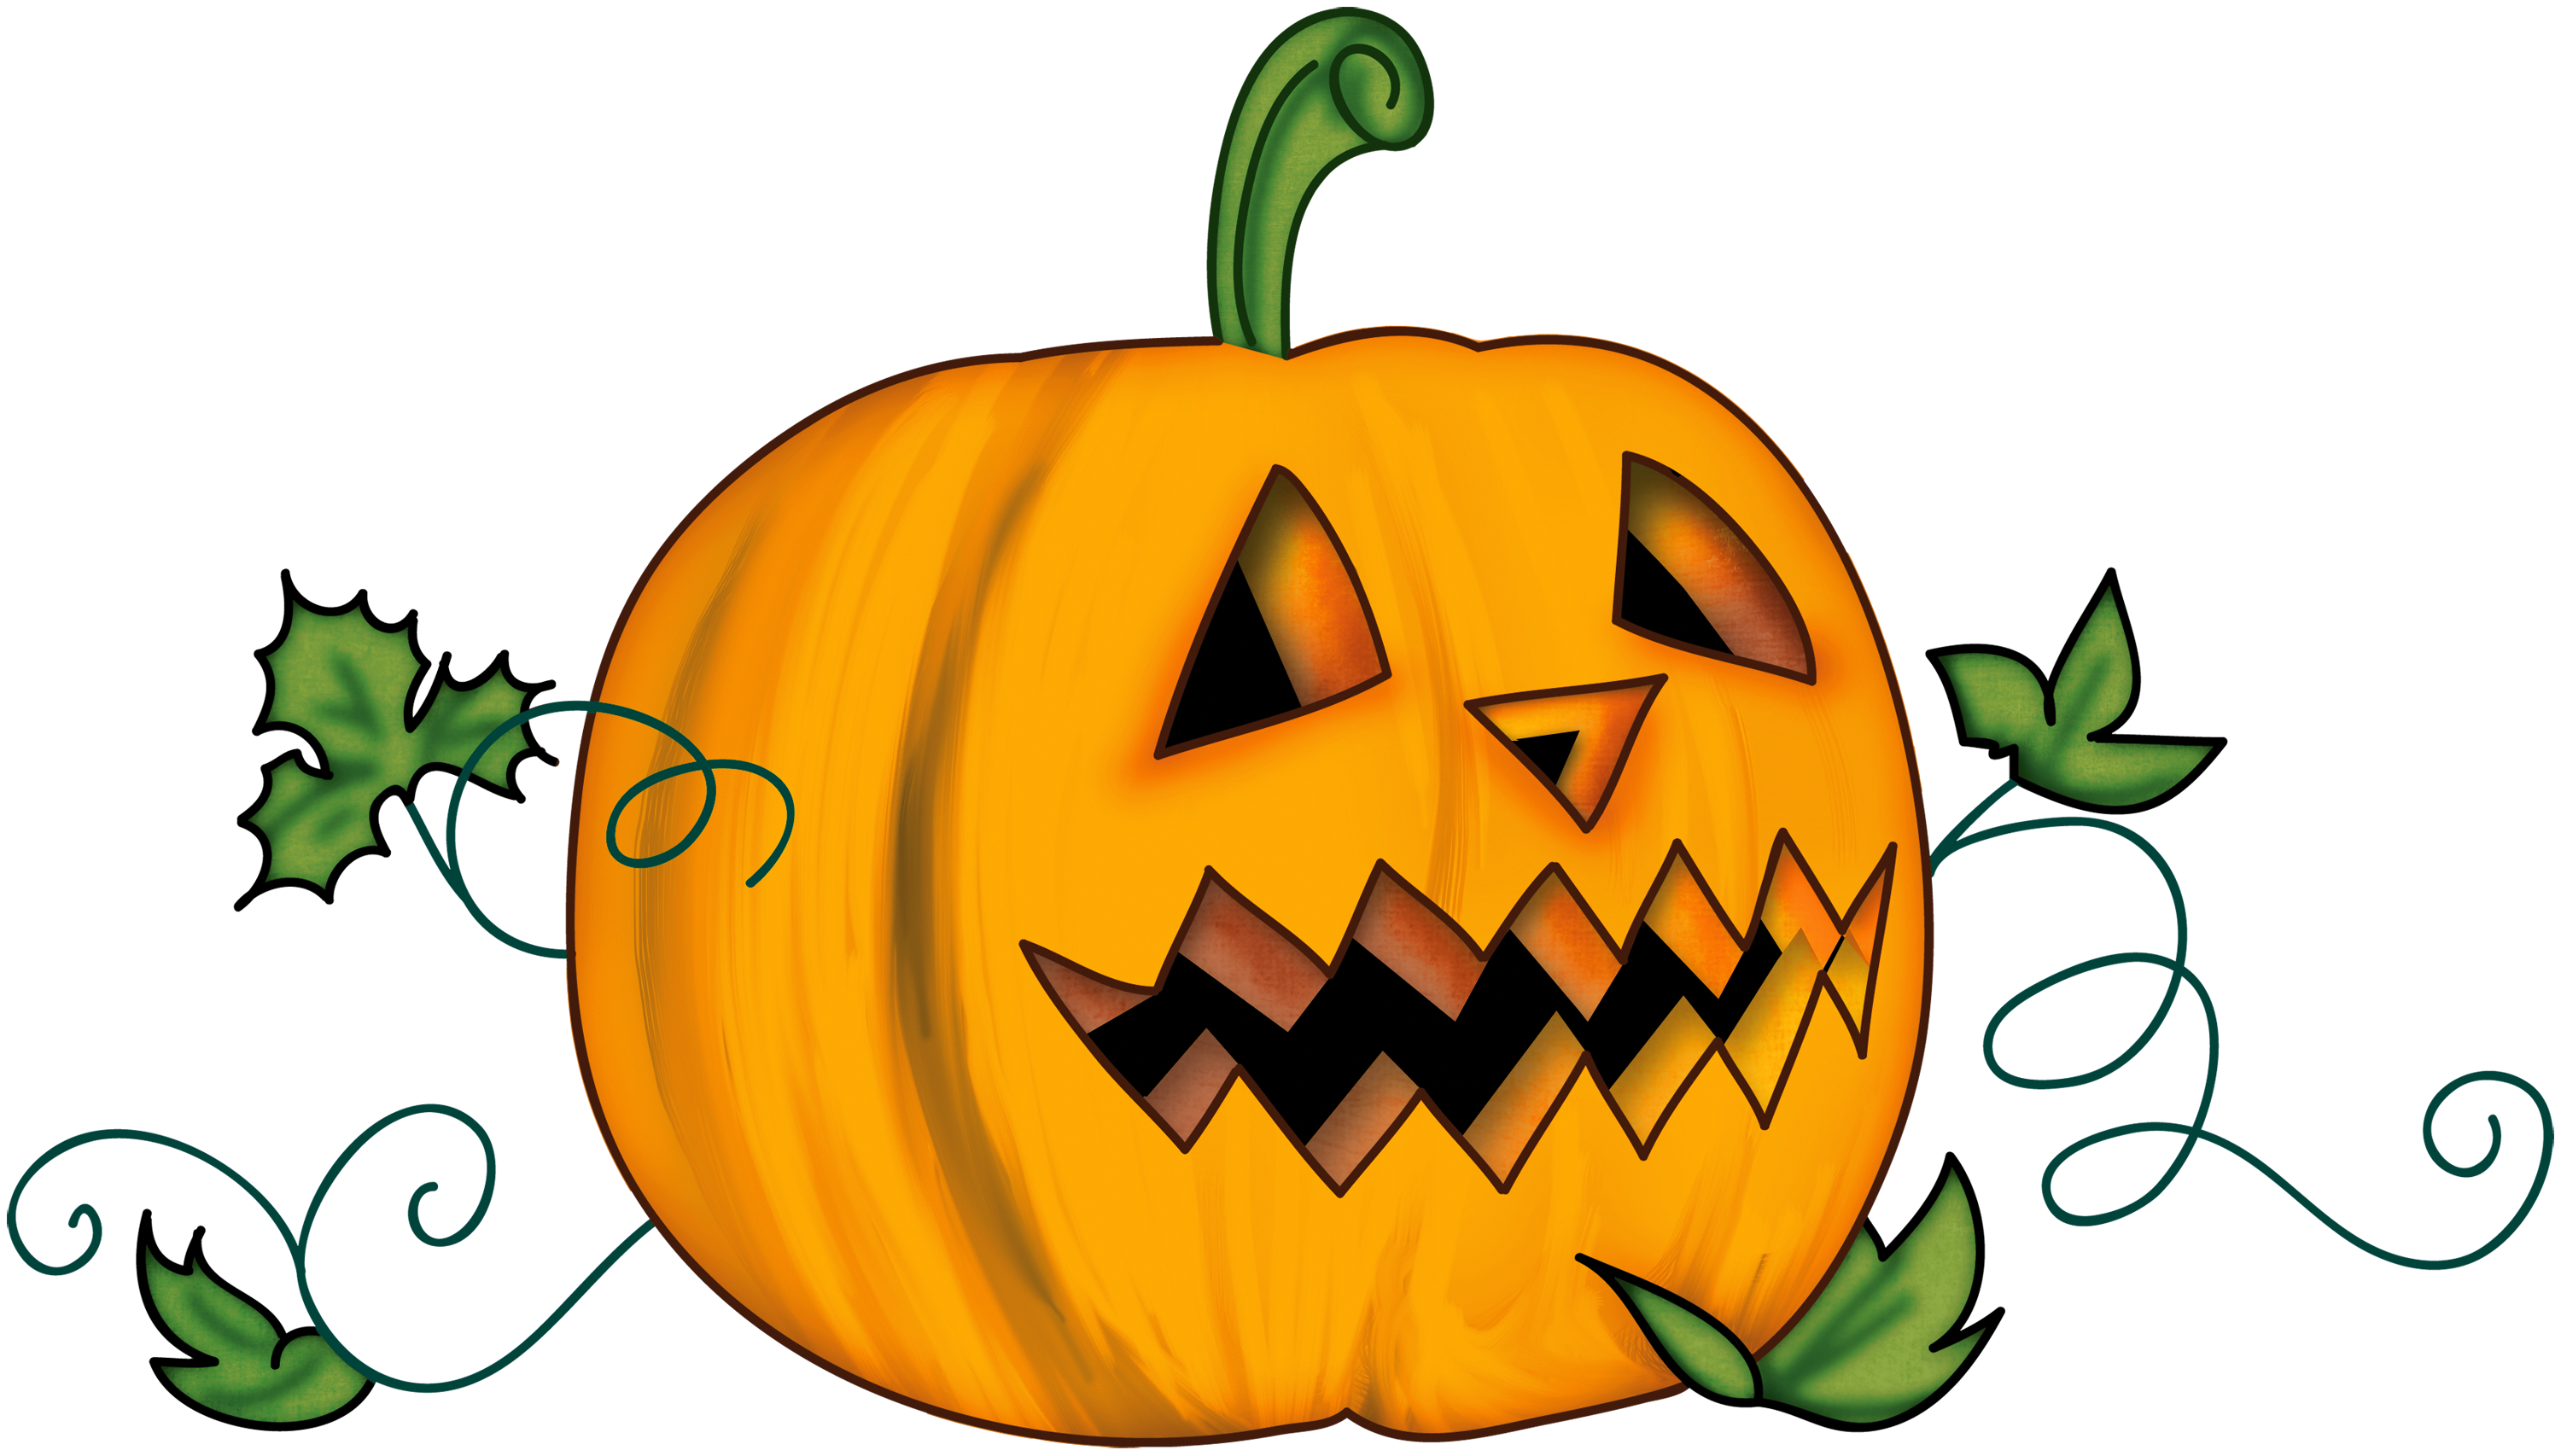 3000x1706 Pumpkin Clipart Transparent Background